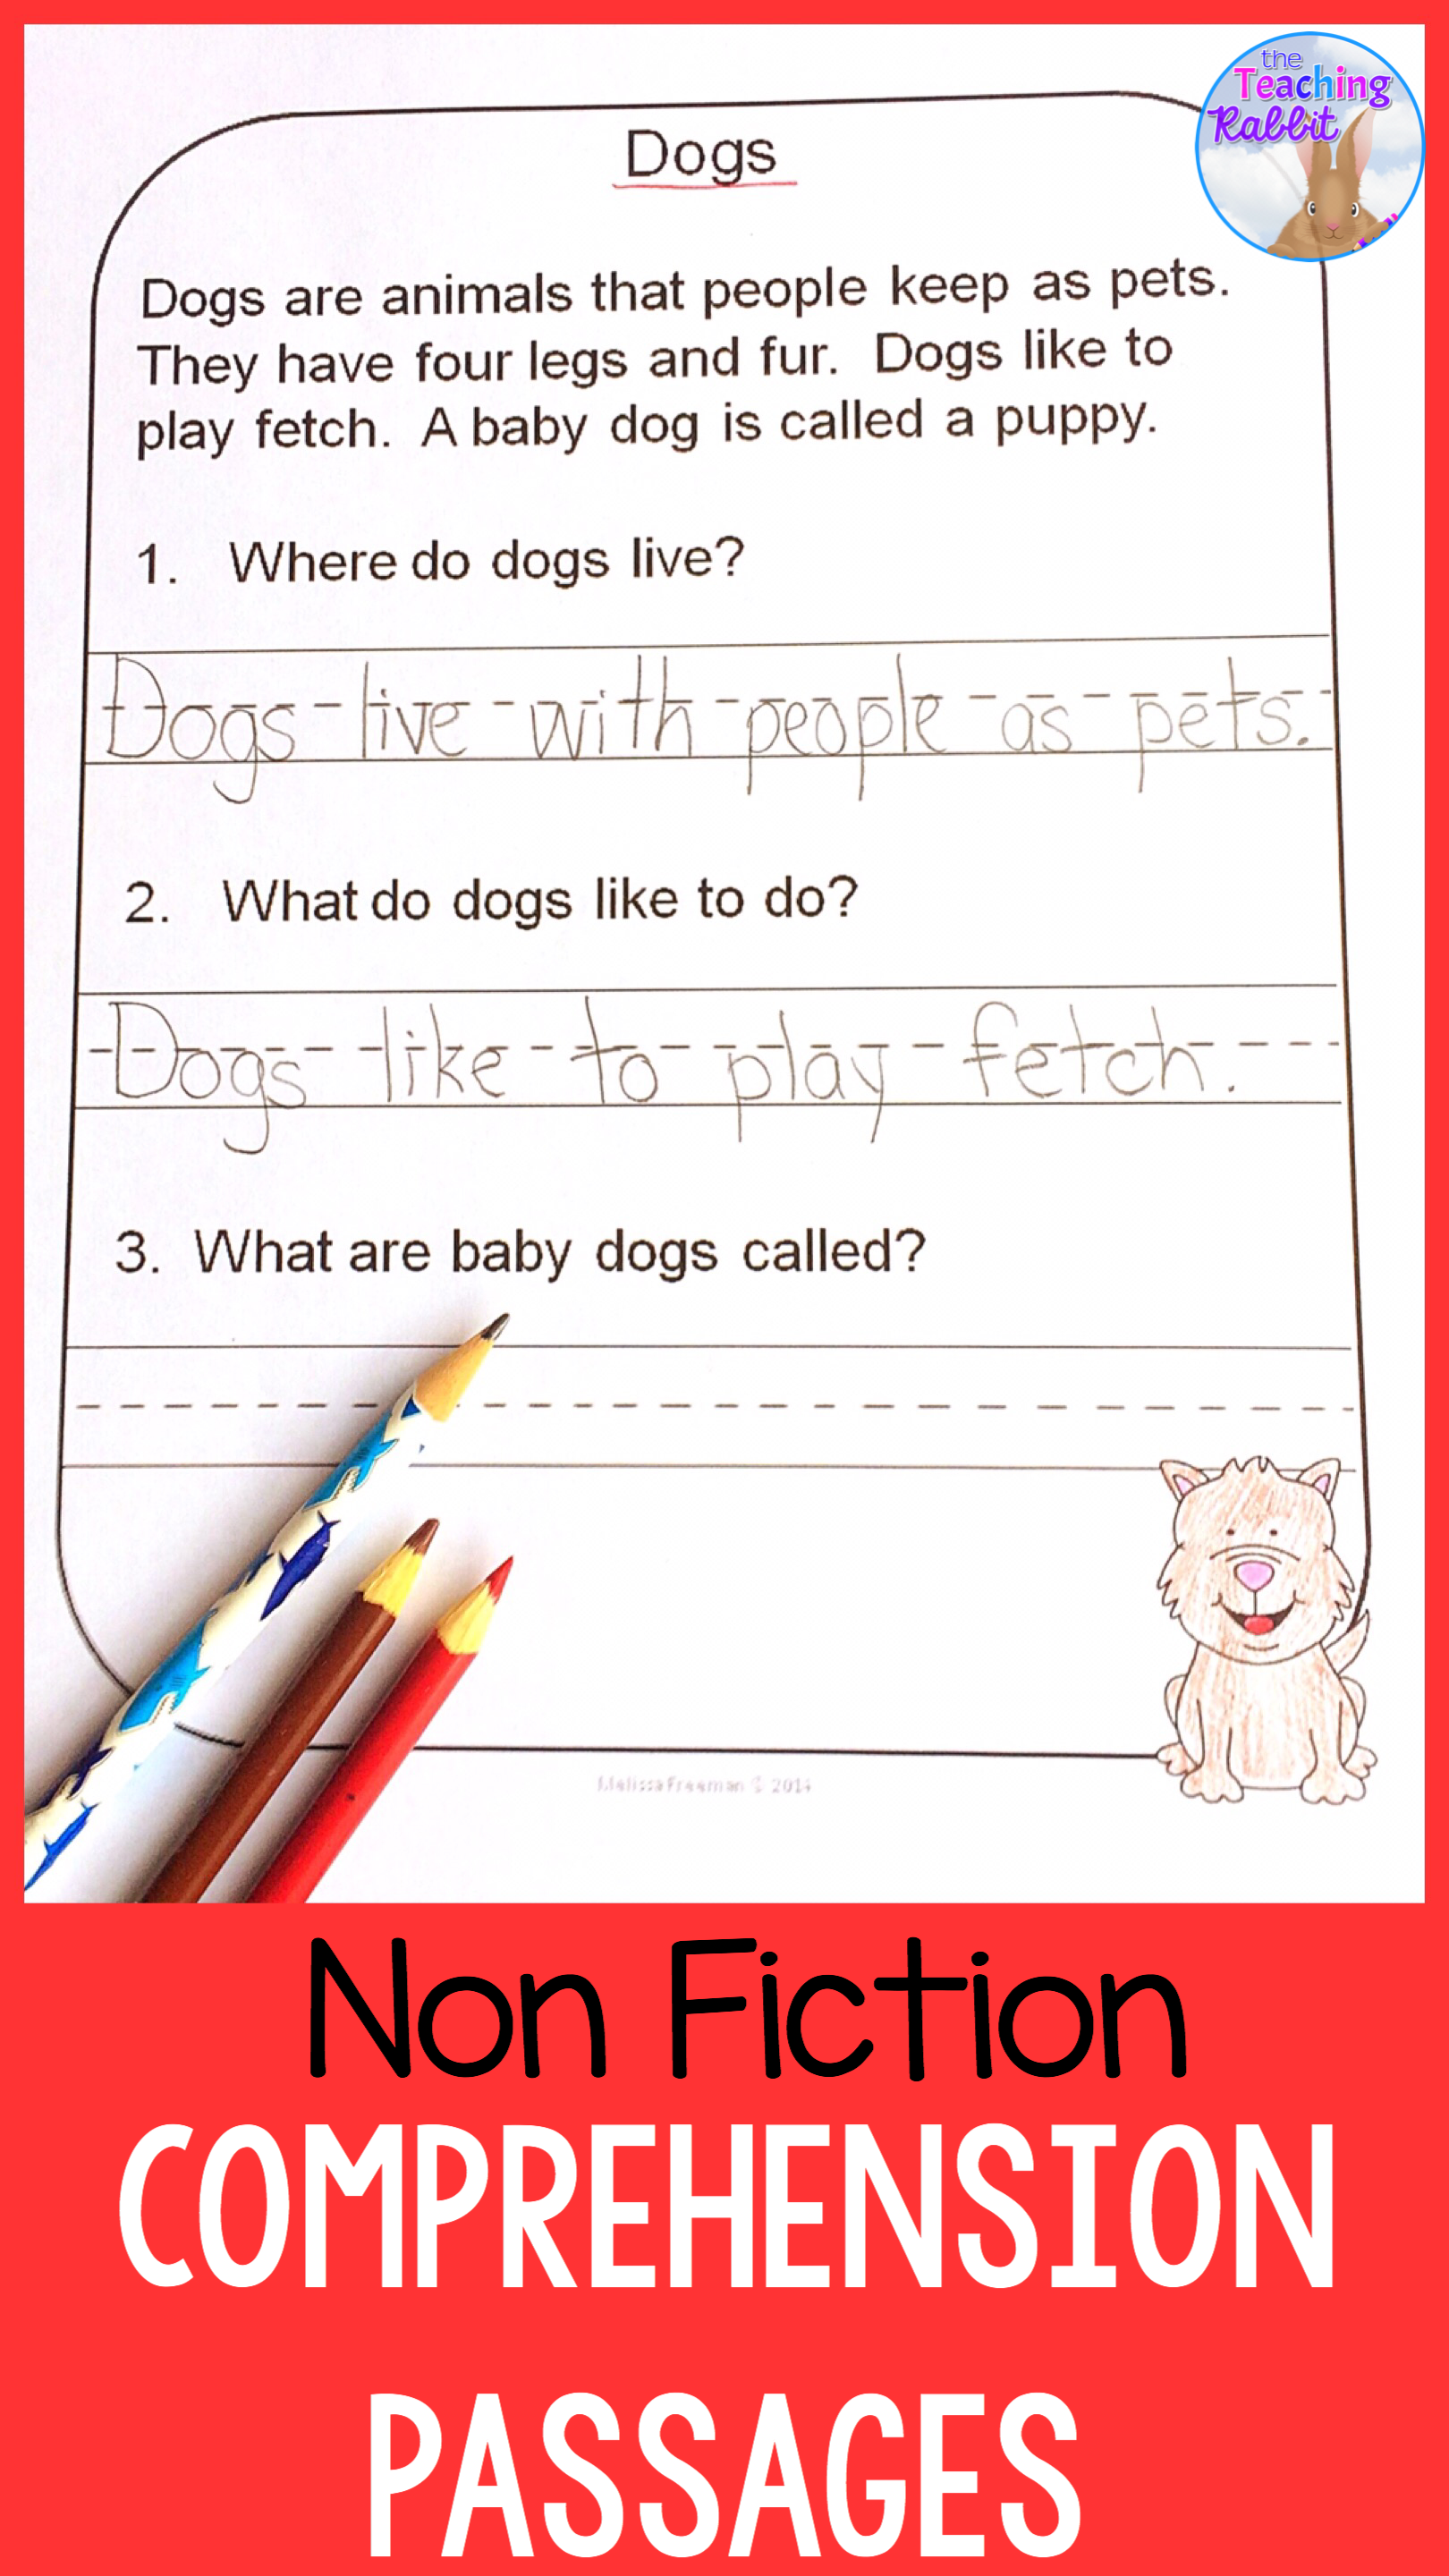 These Short Non Fiction Reading Passages Can Help First Grade Students Develop Comprehension S Reading Comprehension Fiction Reading Passages Reading Passages [ 2880 x 1620 Pixel ]